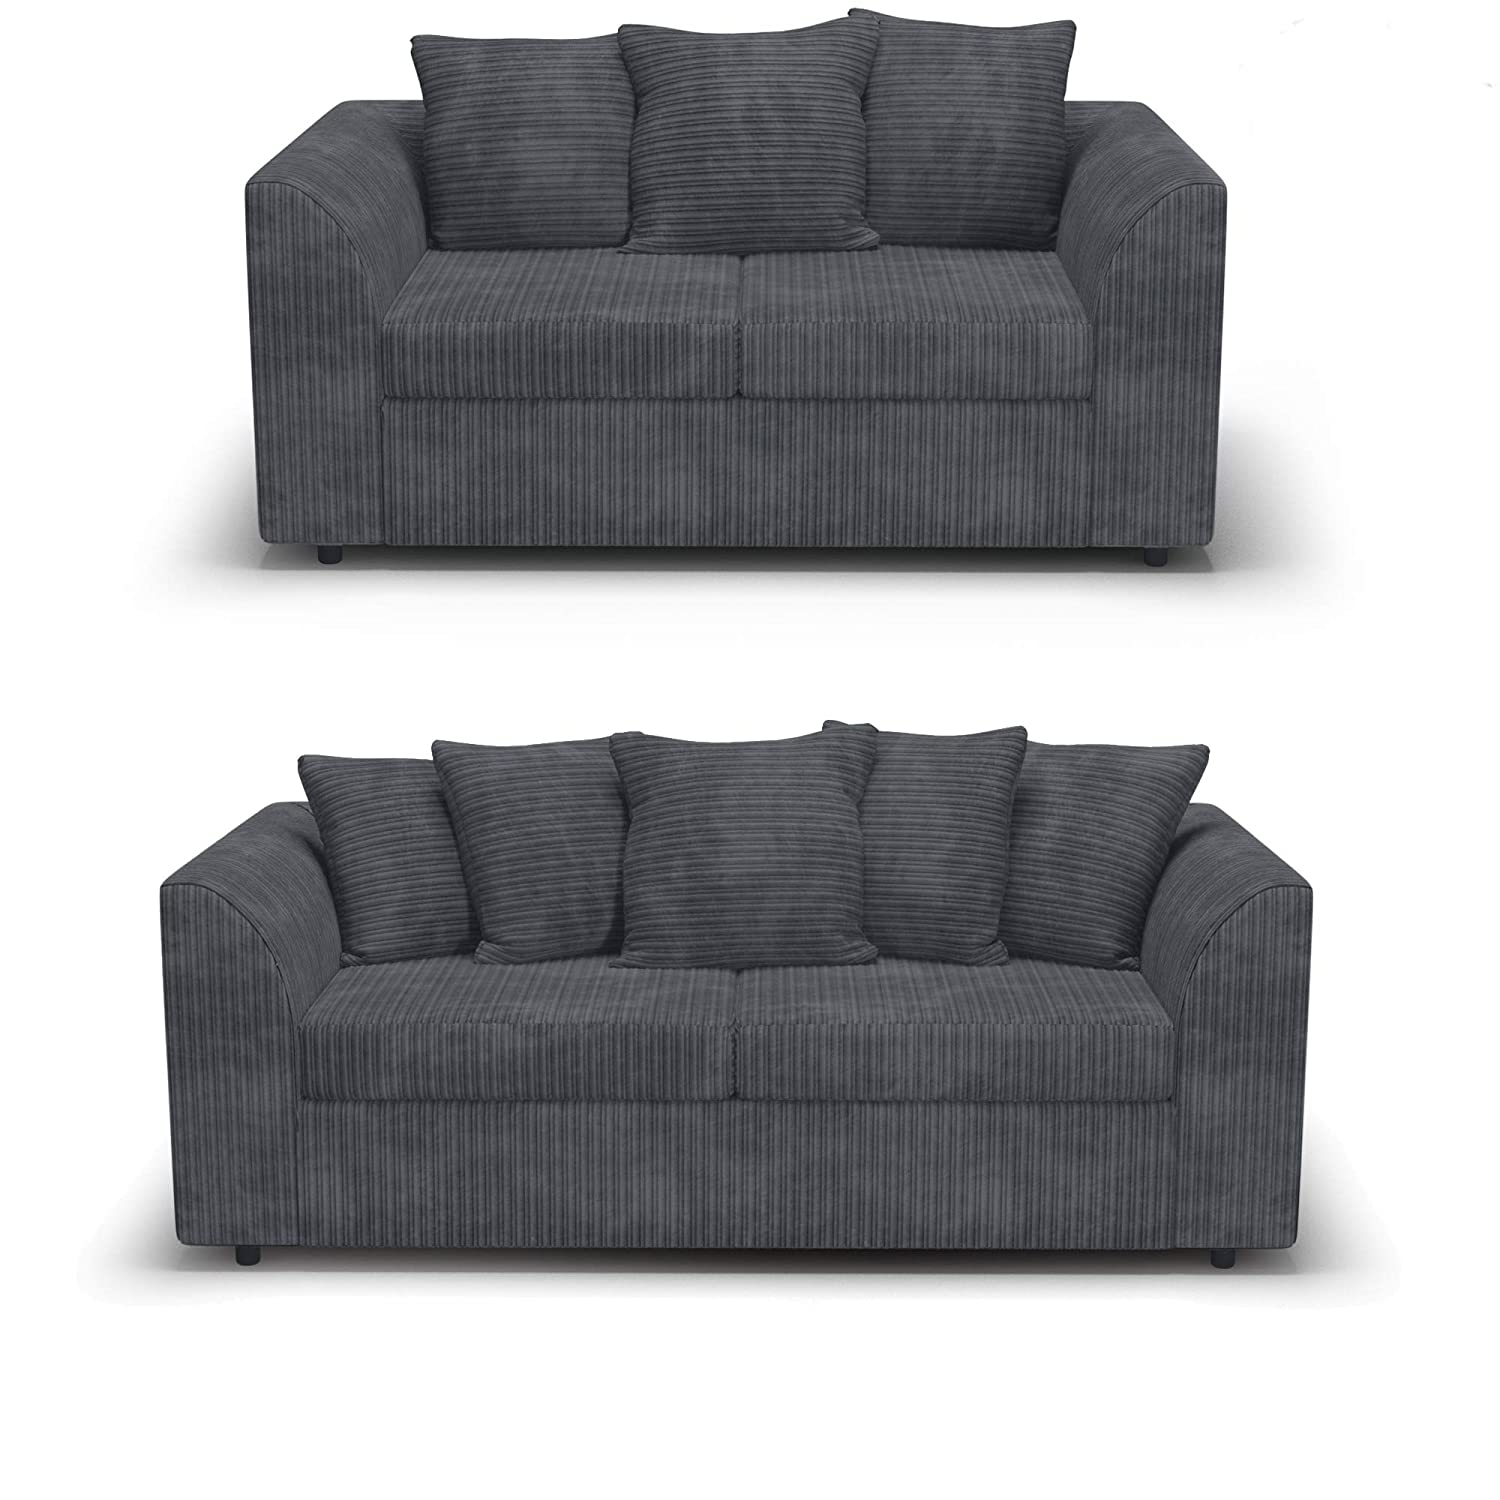 Amazon.com : Dylan Byron Grey Fabric Jumbo Cord Sofa Settee ...